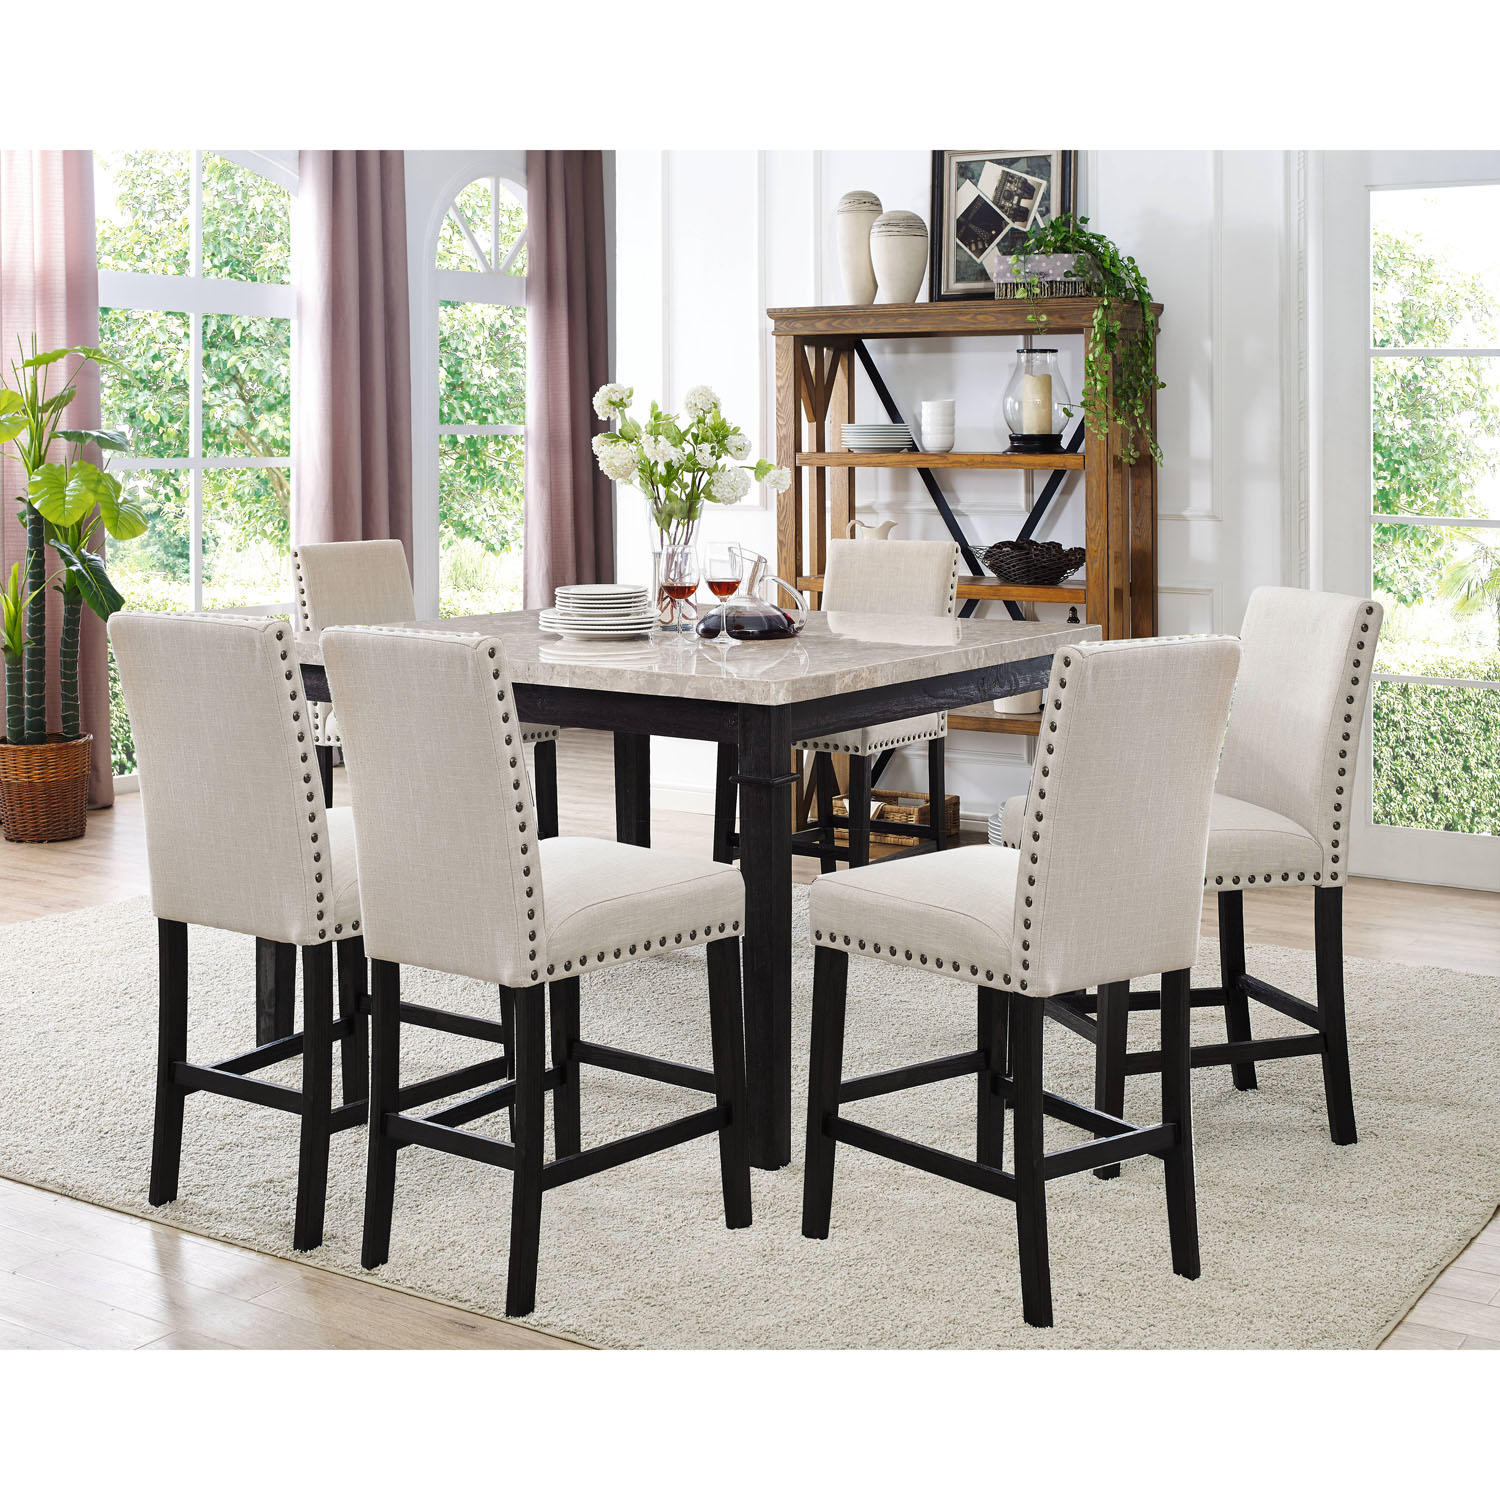 Cambridge Azul 7-Piece Dining Set with Fabric Chairs